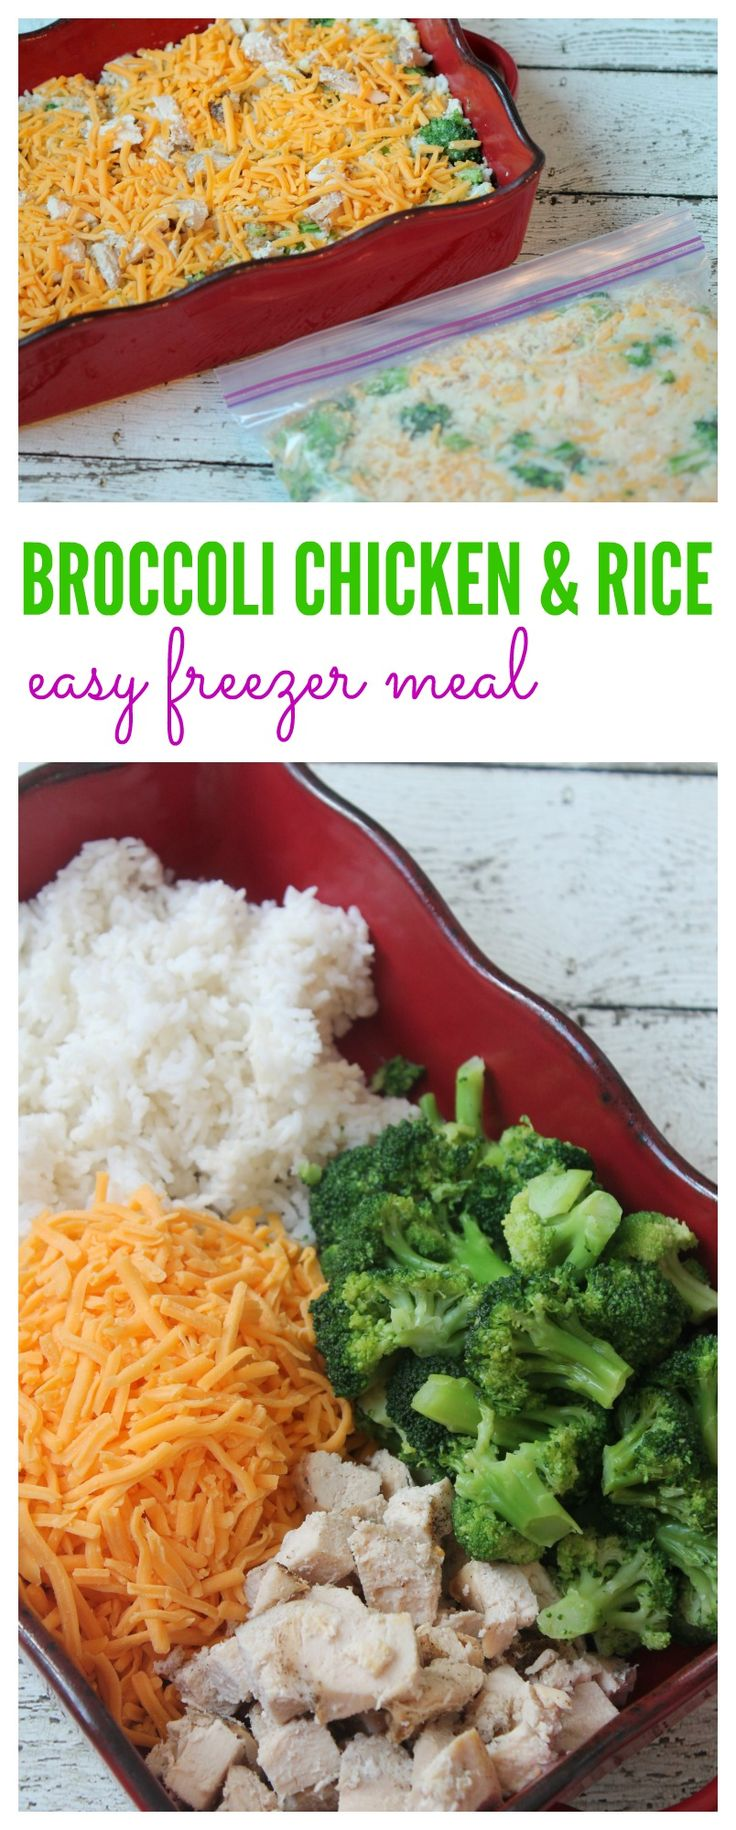 Cheesy broccoli chicken rice recipe! Easy Freezer Meal for your family!